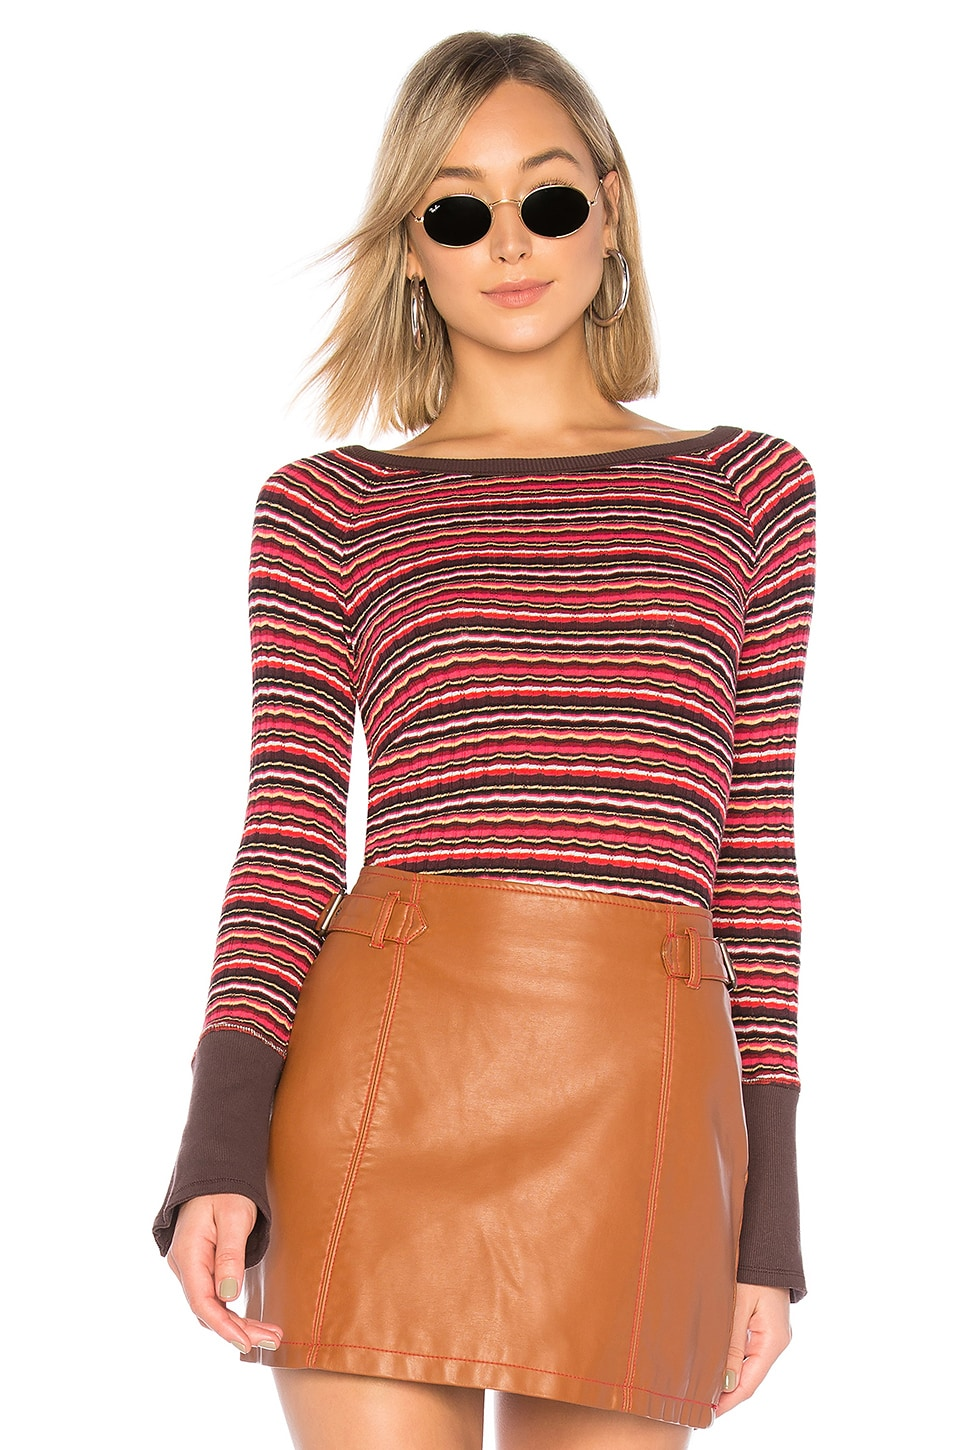 Free People Donna Tee in Wine